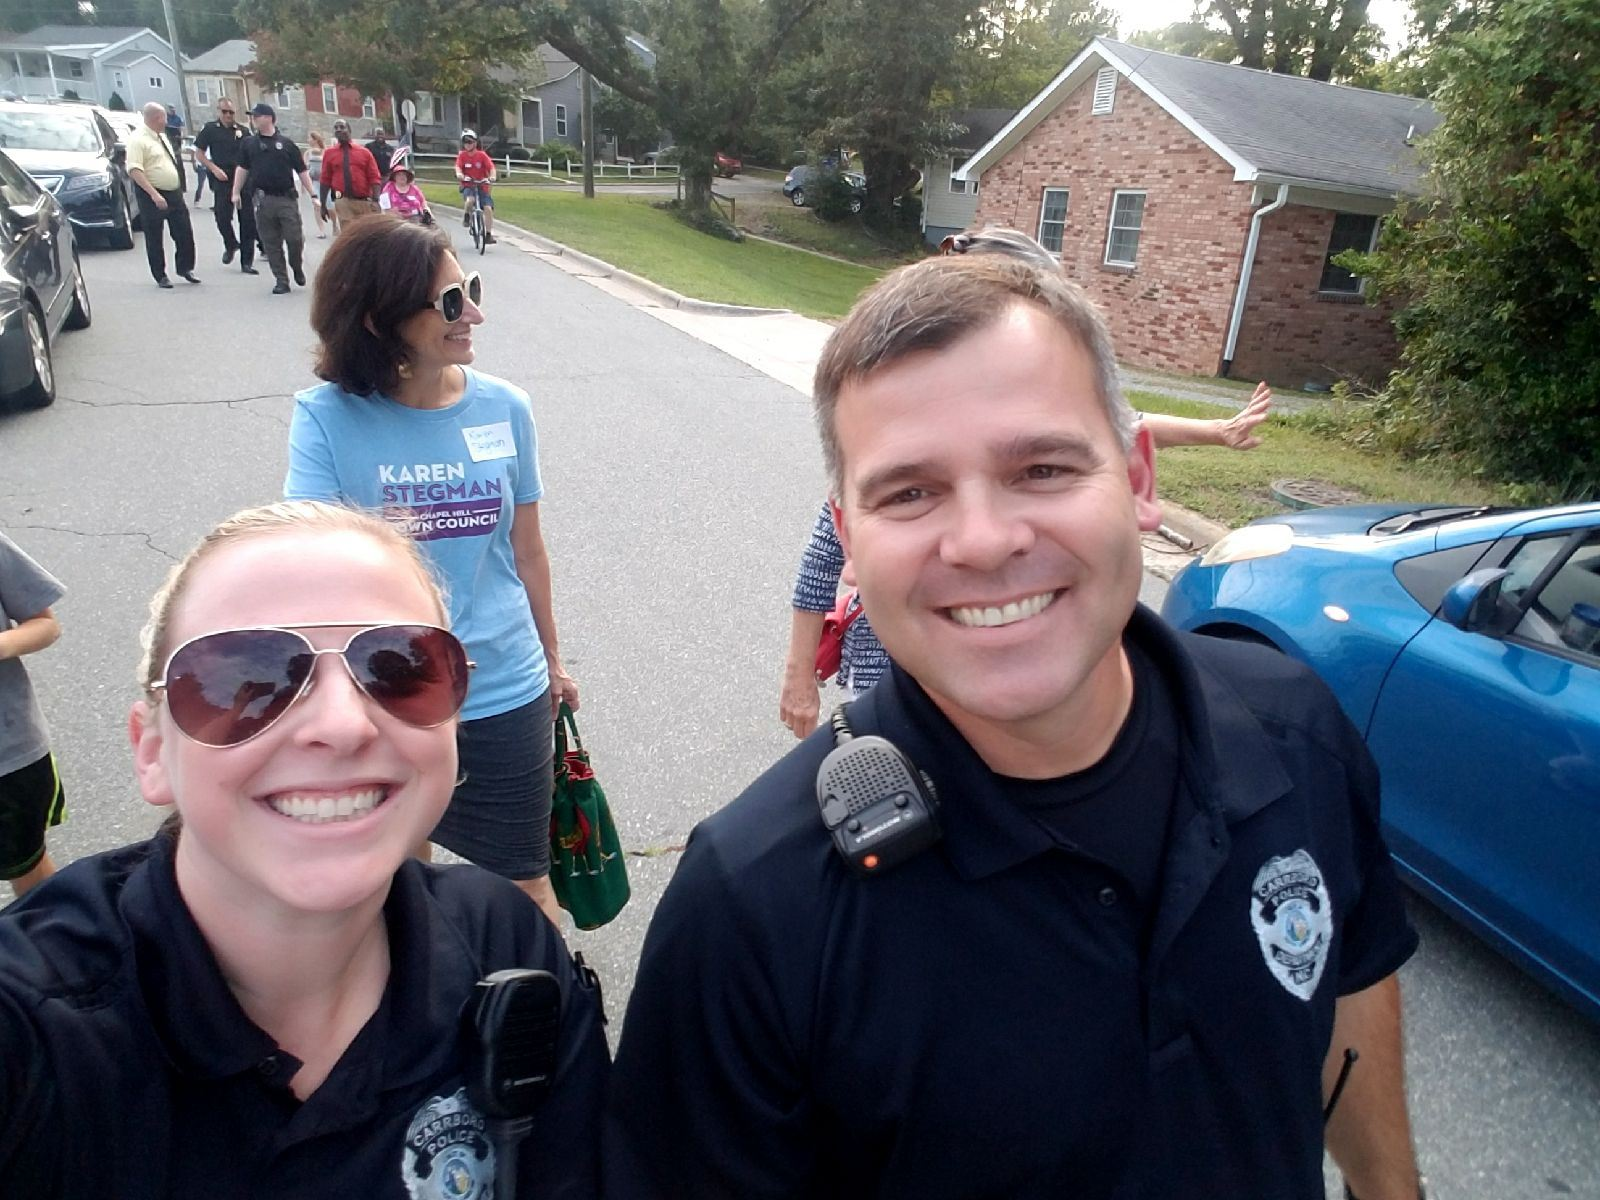 Officer Ferraro and Officer Trombley